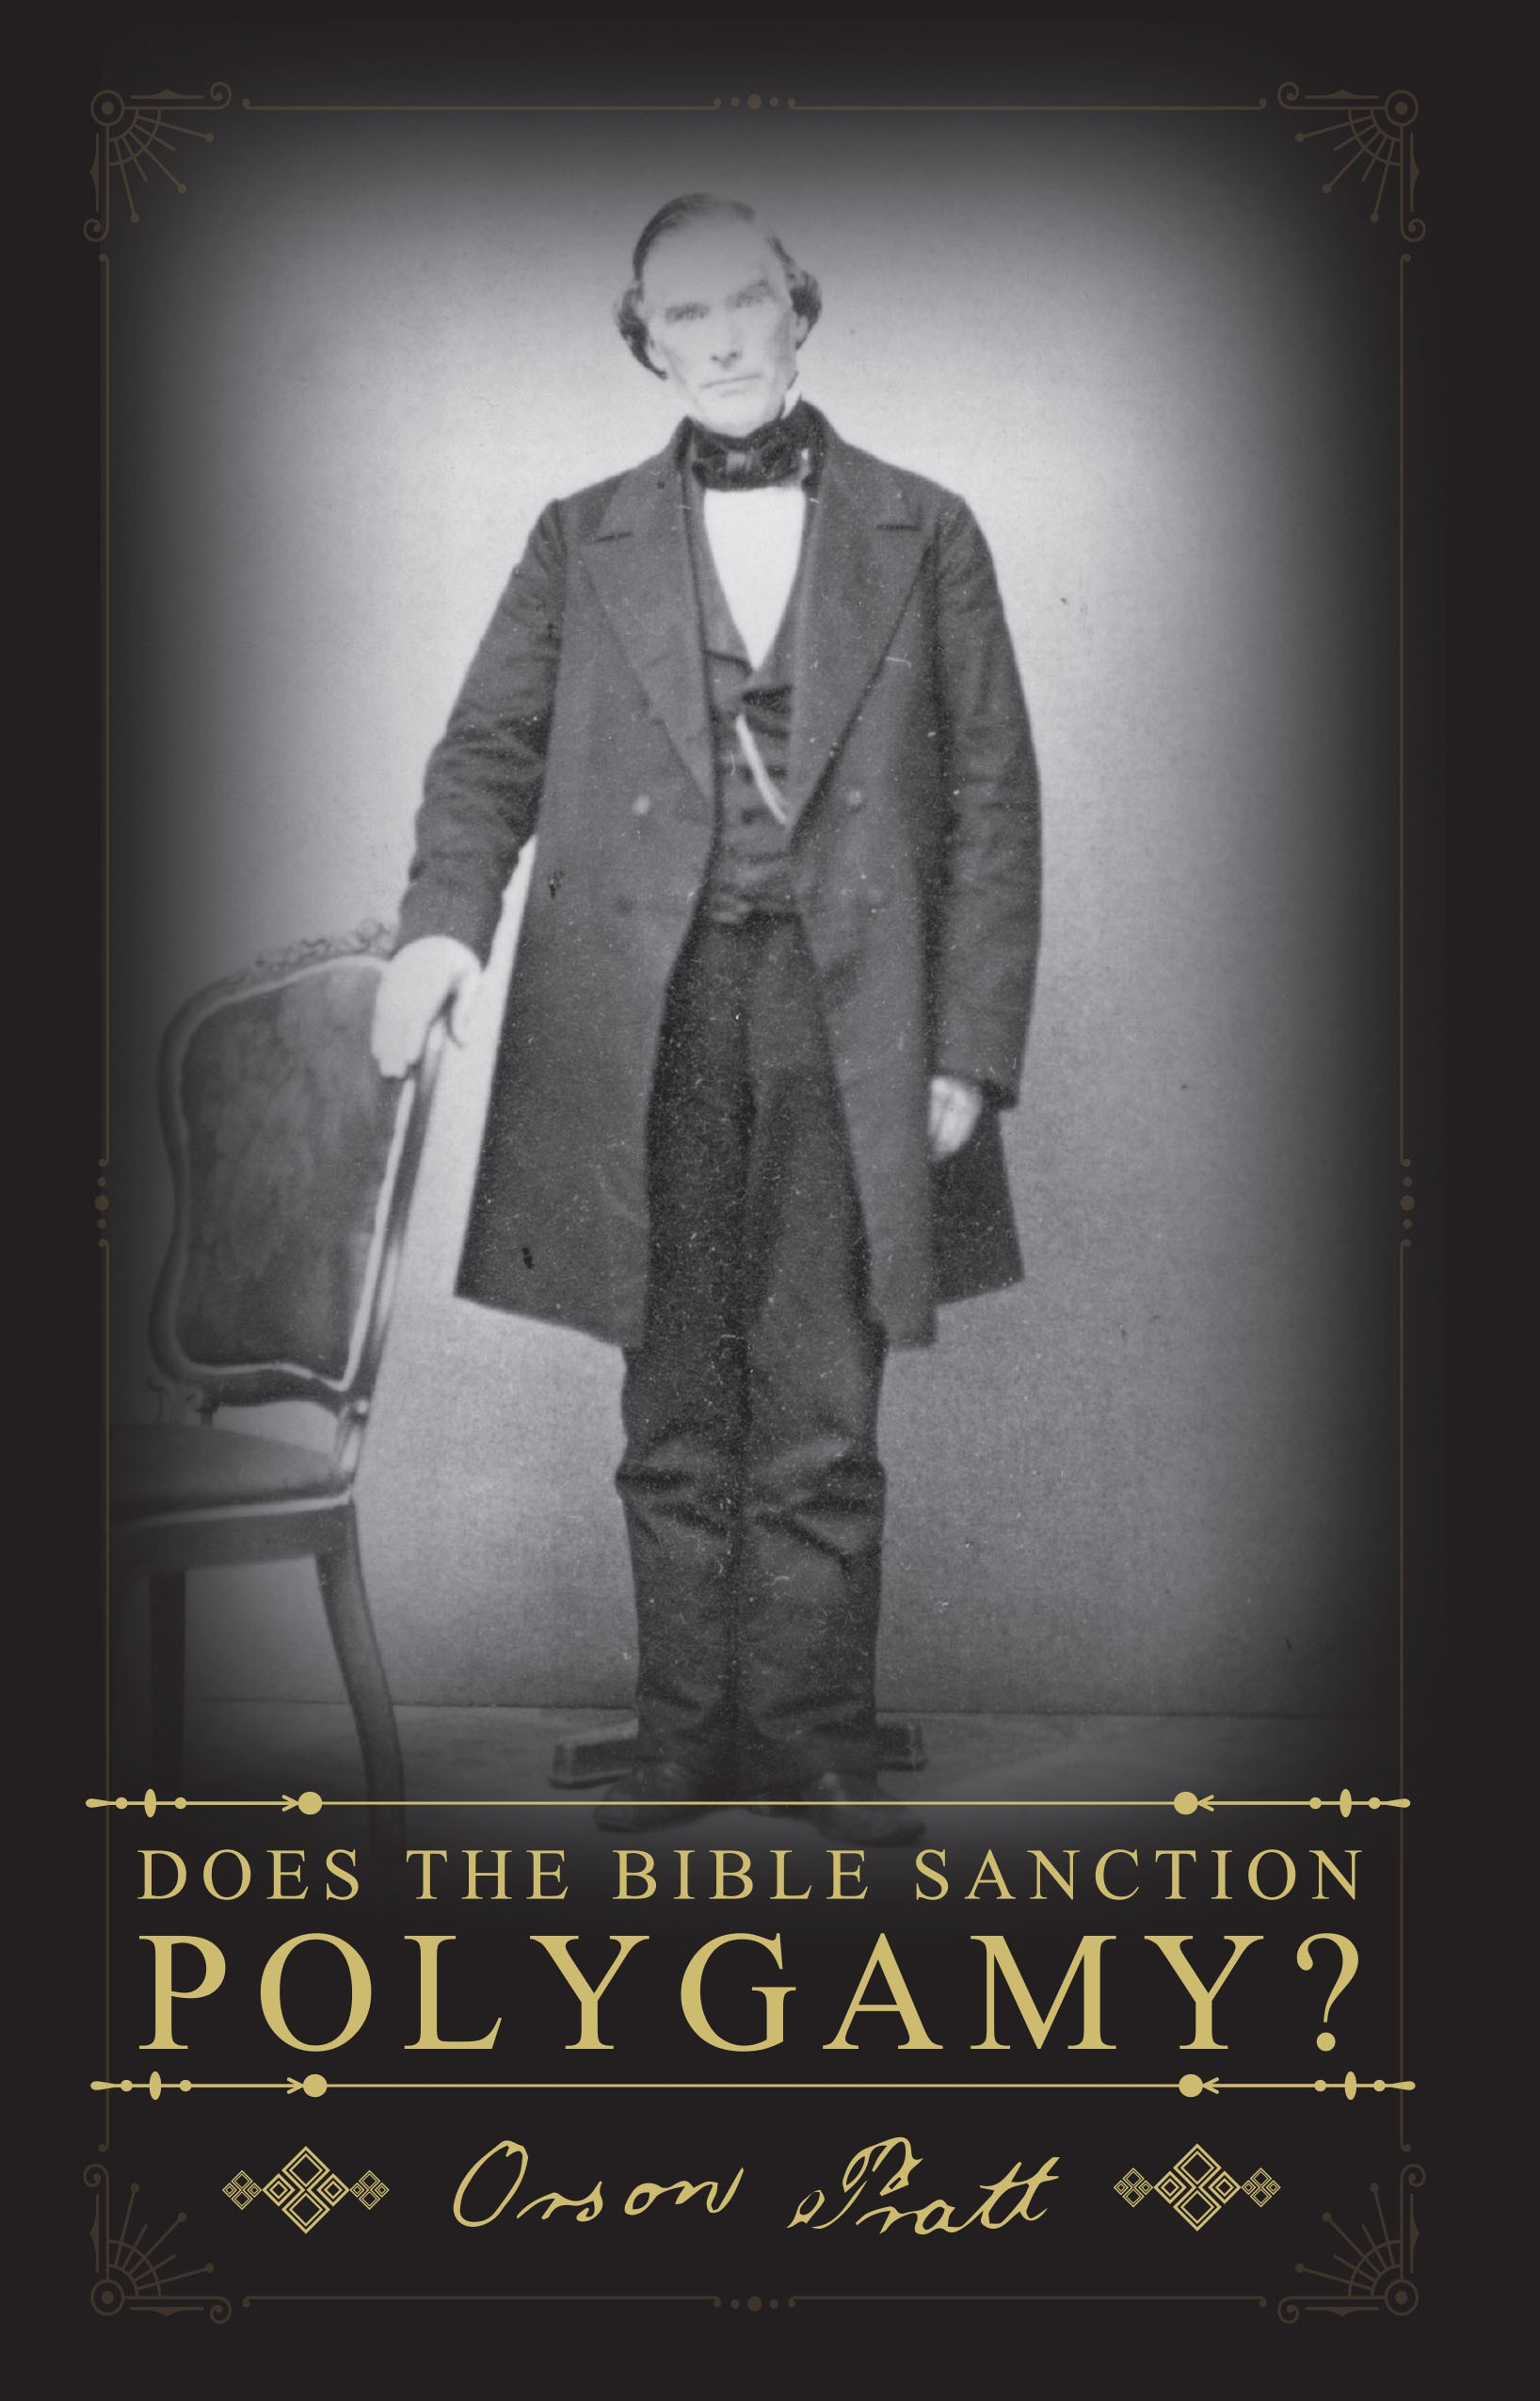 Does the Bible Sanction Polygamy? (1892)